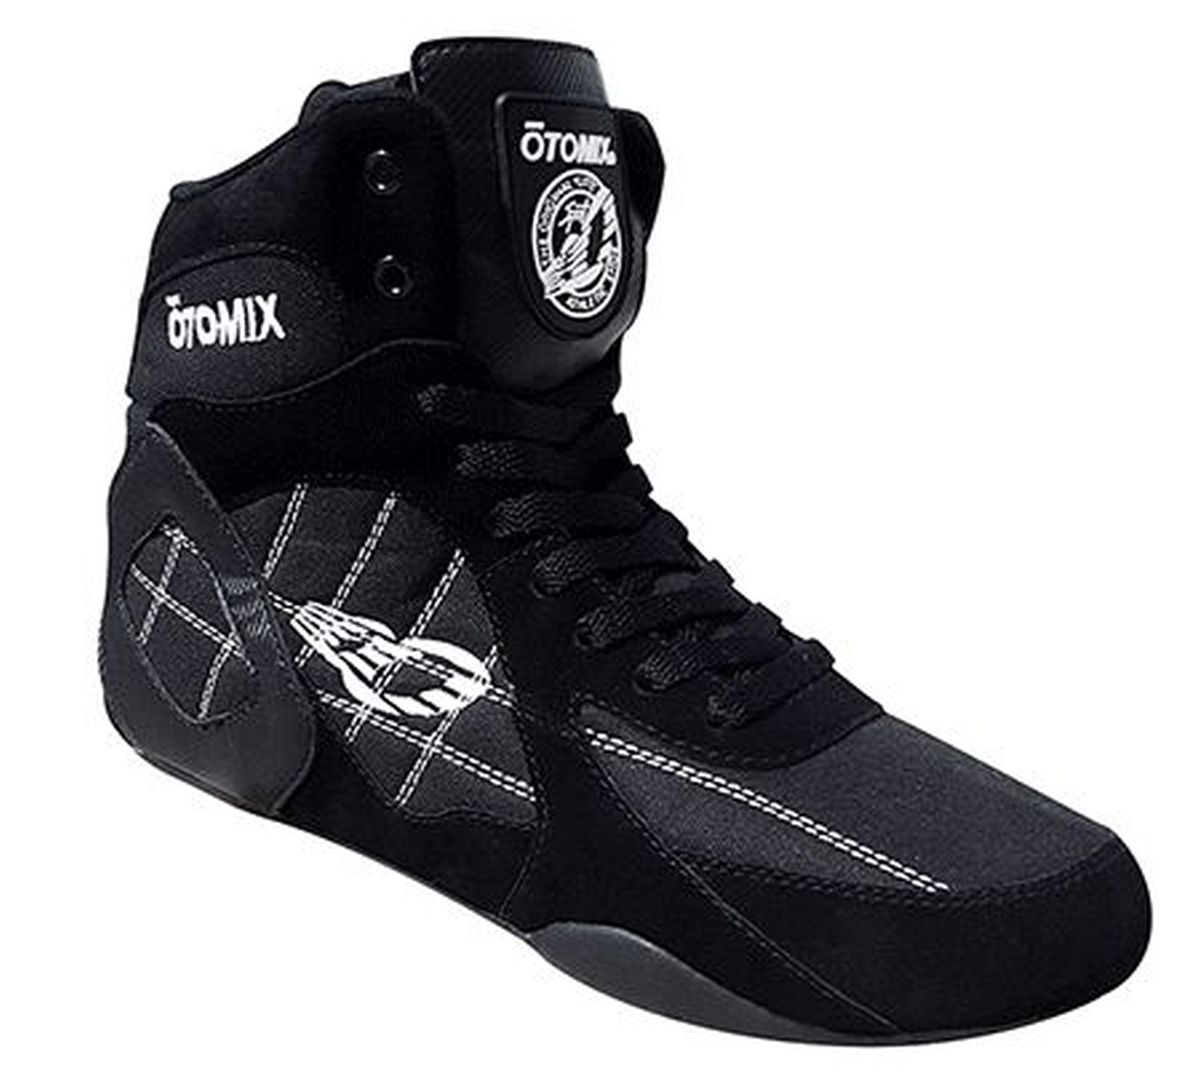 Otomix Shoes For Sale